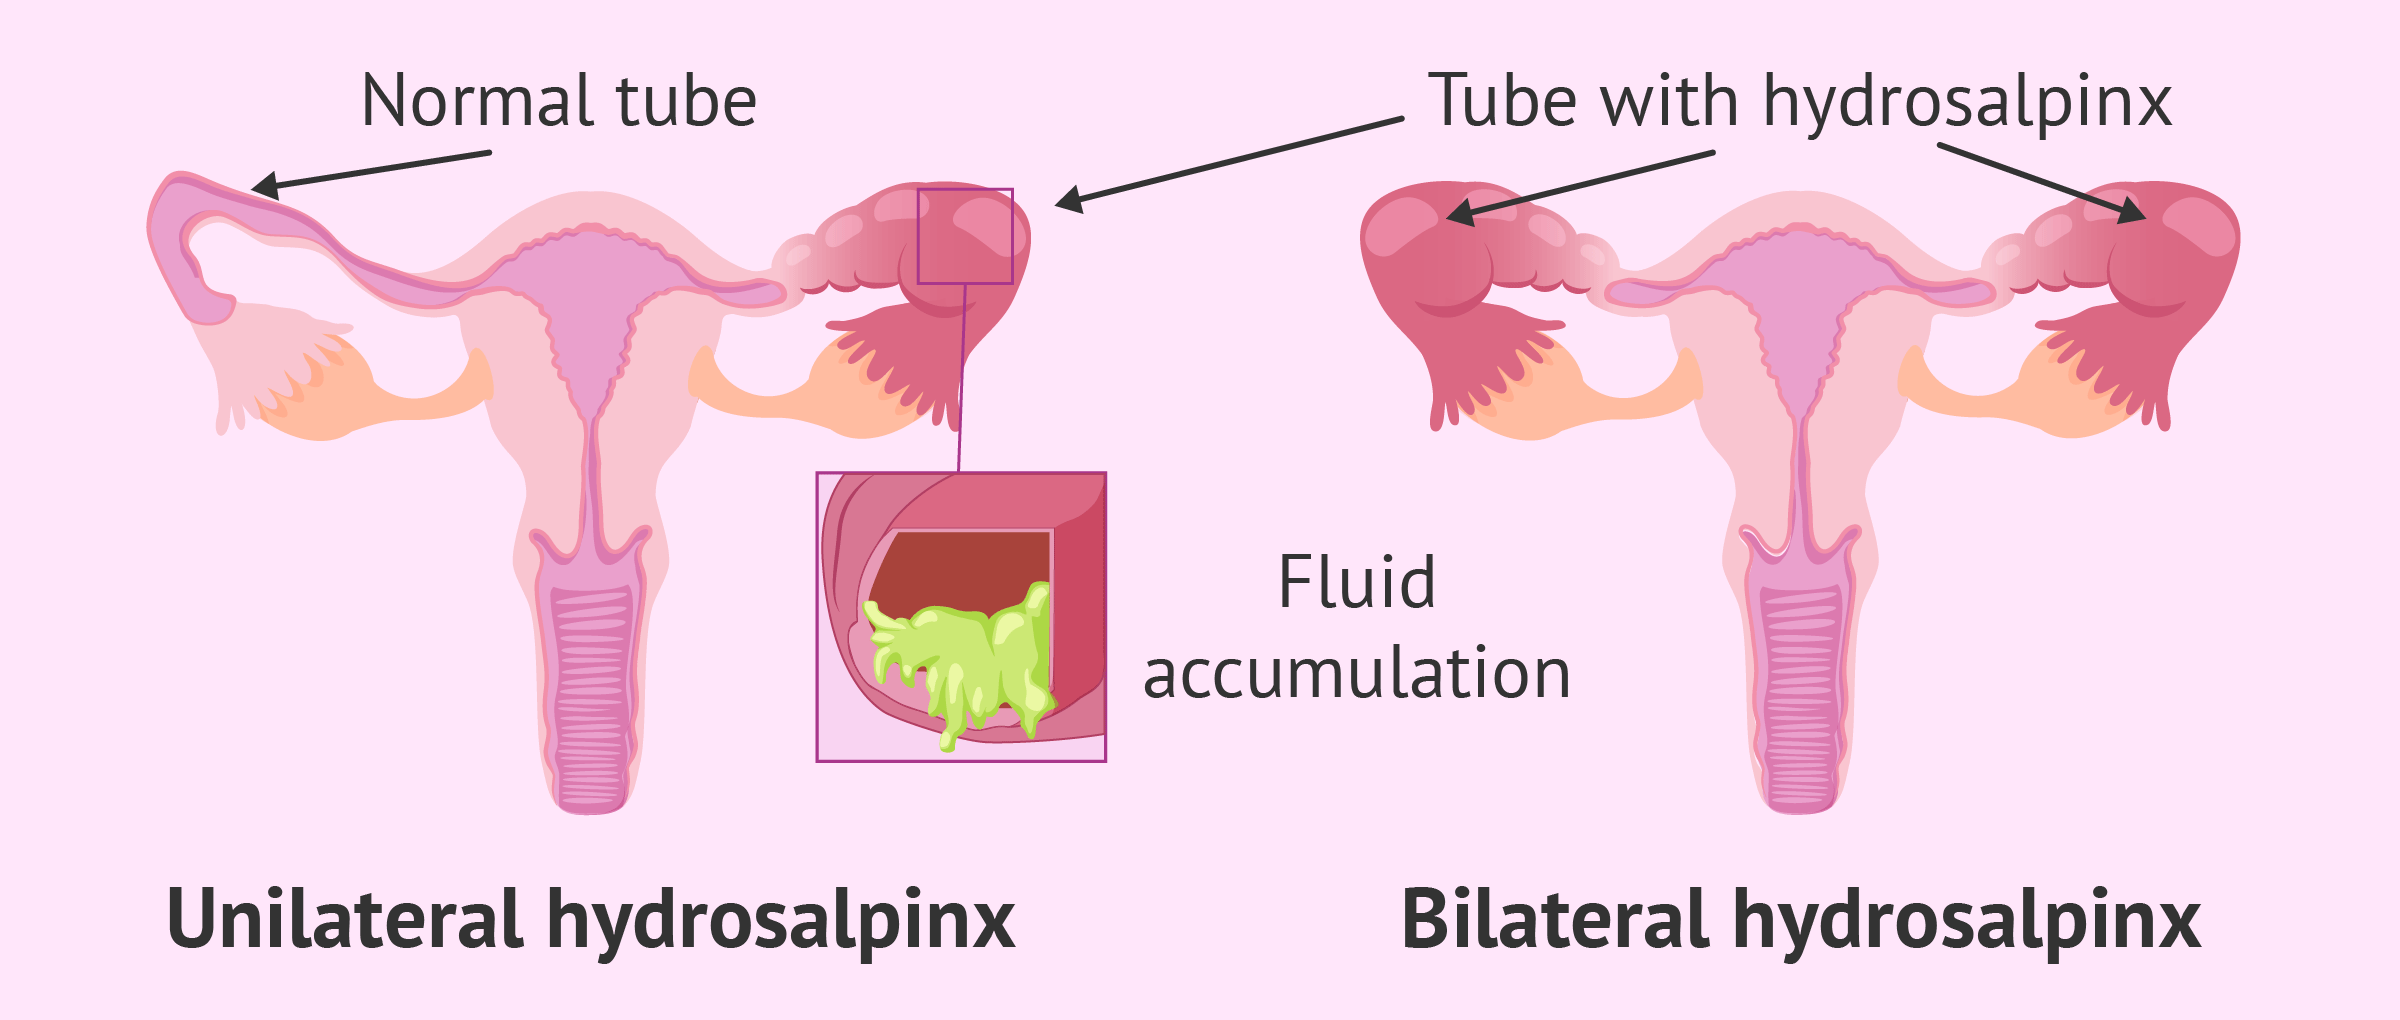 Hydrosalpinx in one or both tubes